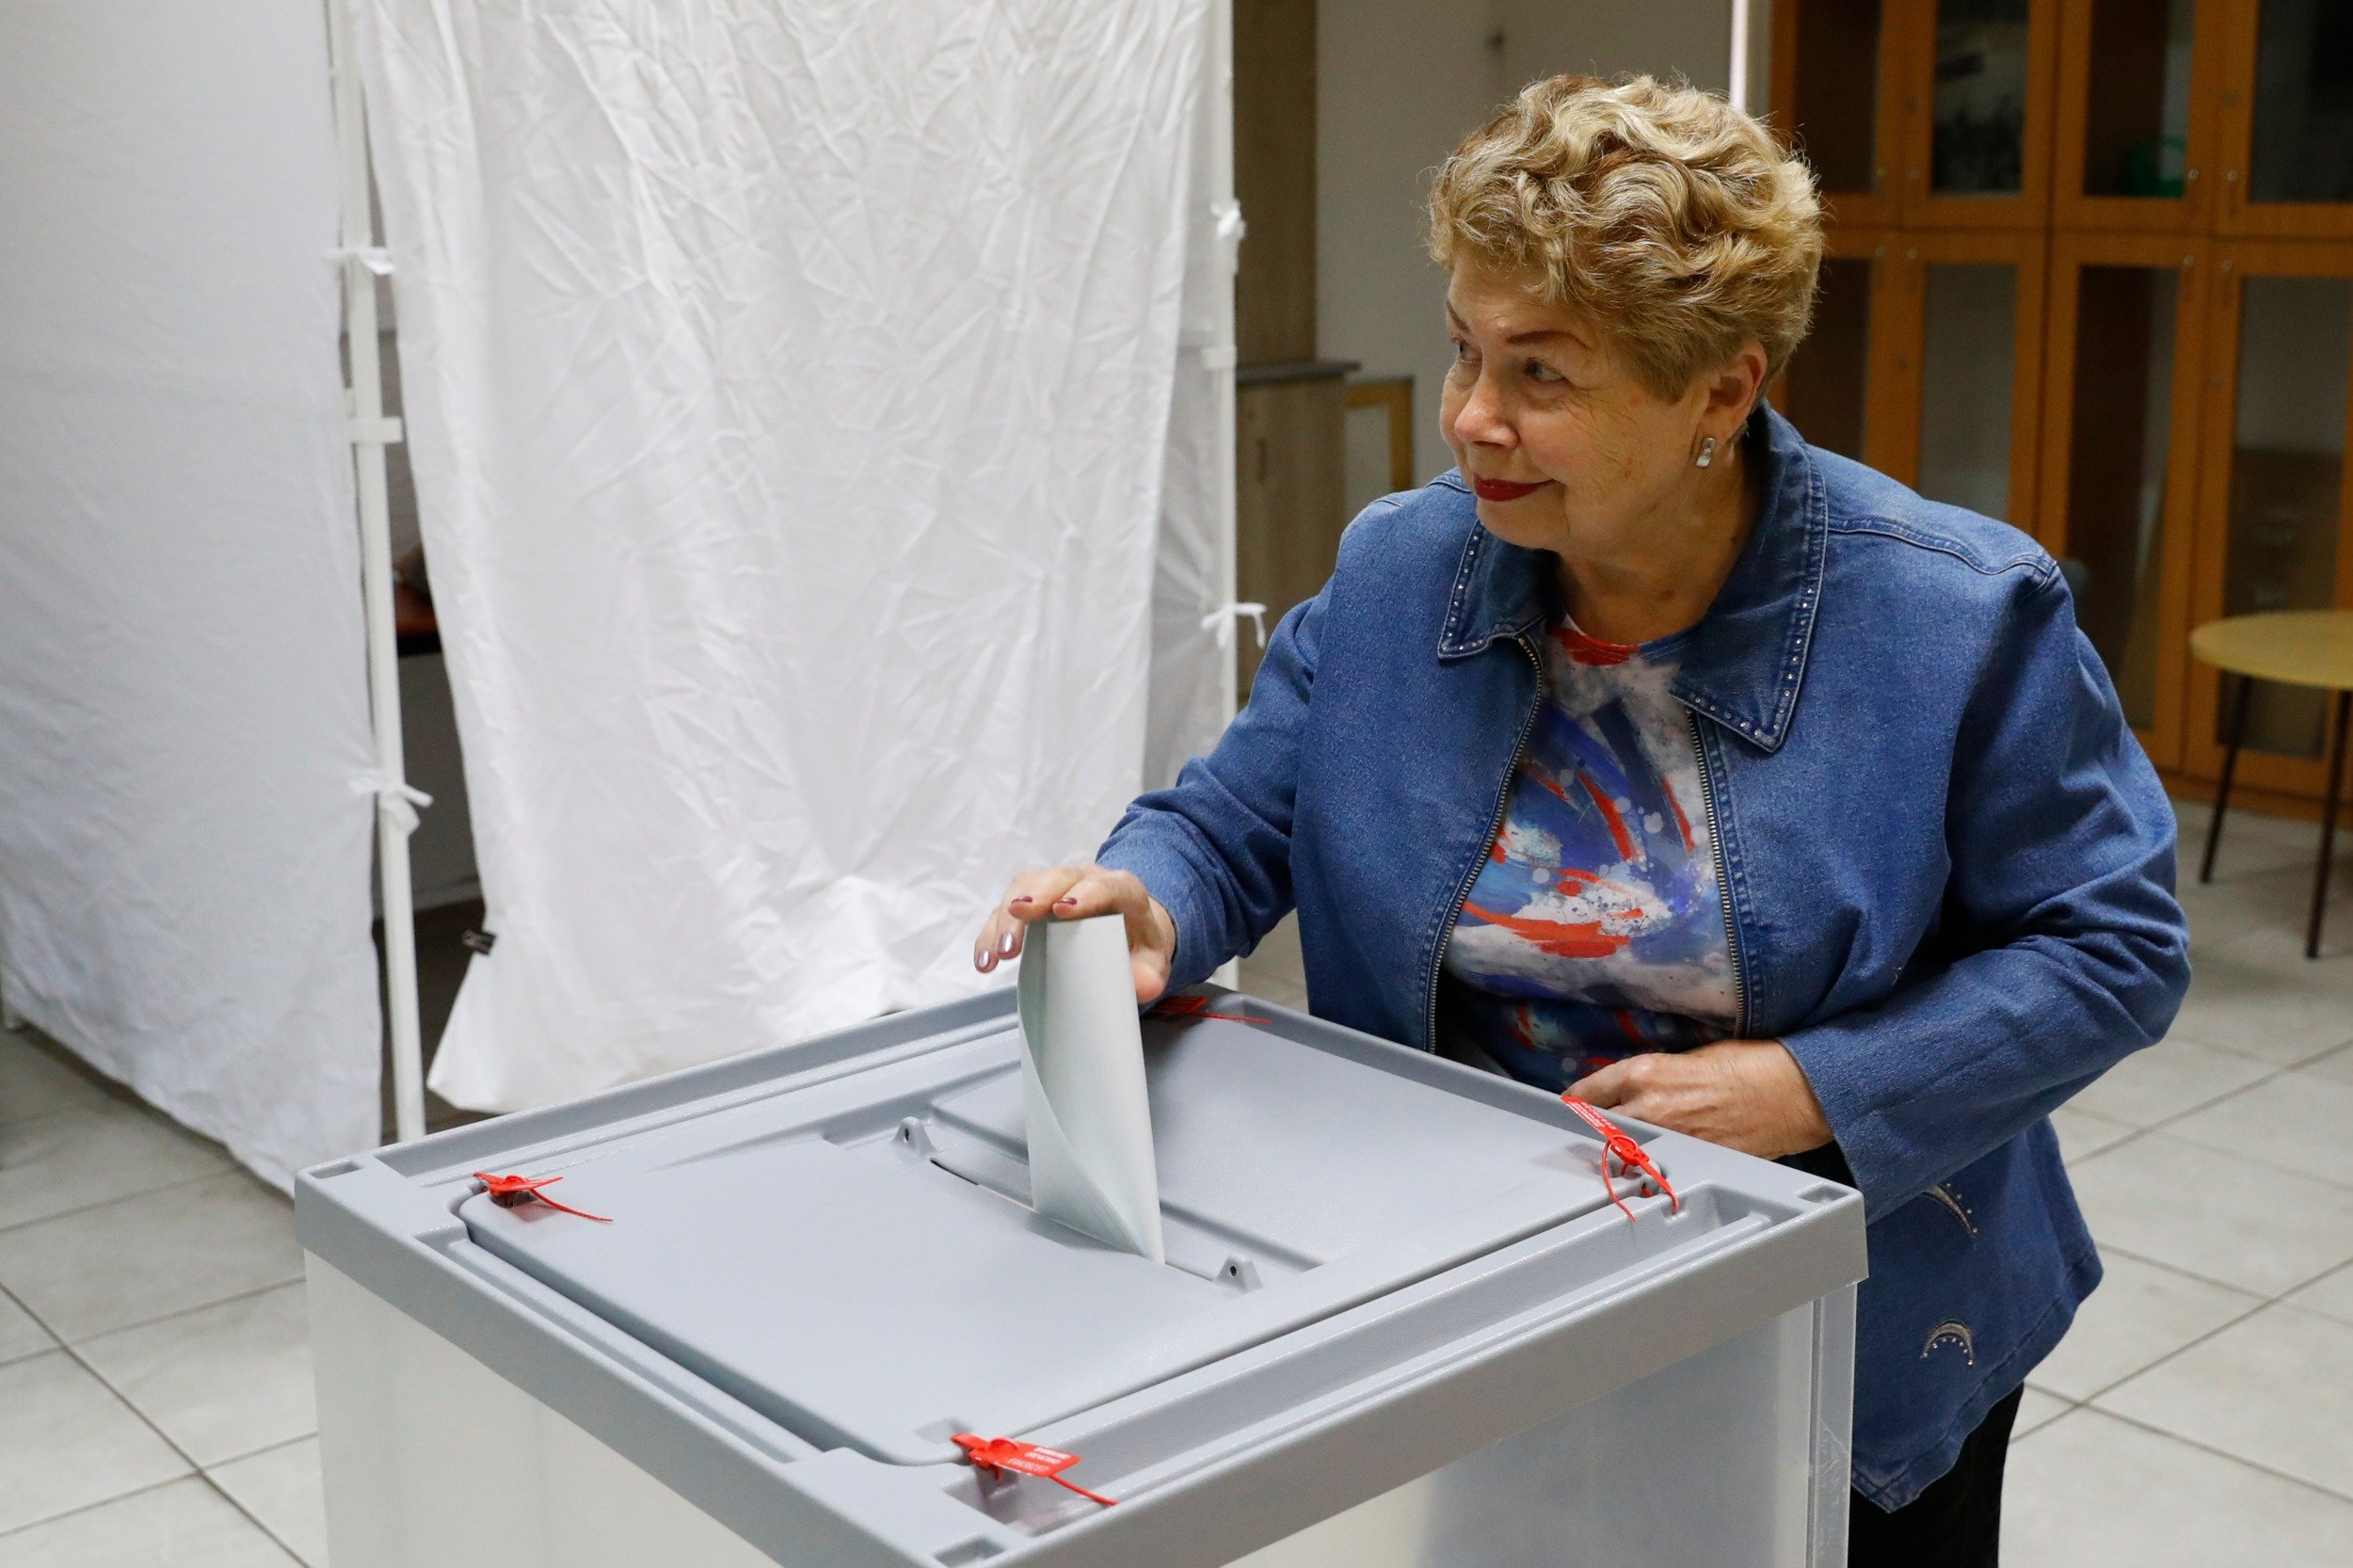 A Russian national residing in Israel casts her vote at a polling station in the coastal city of Netanya, during Russia's 2018 presidential election (AFP)